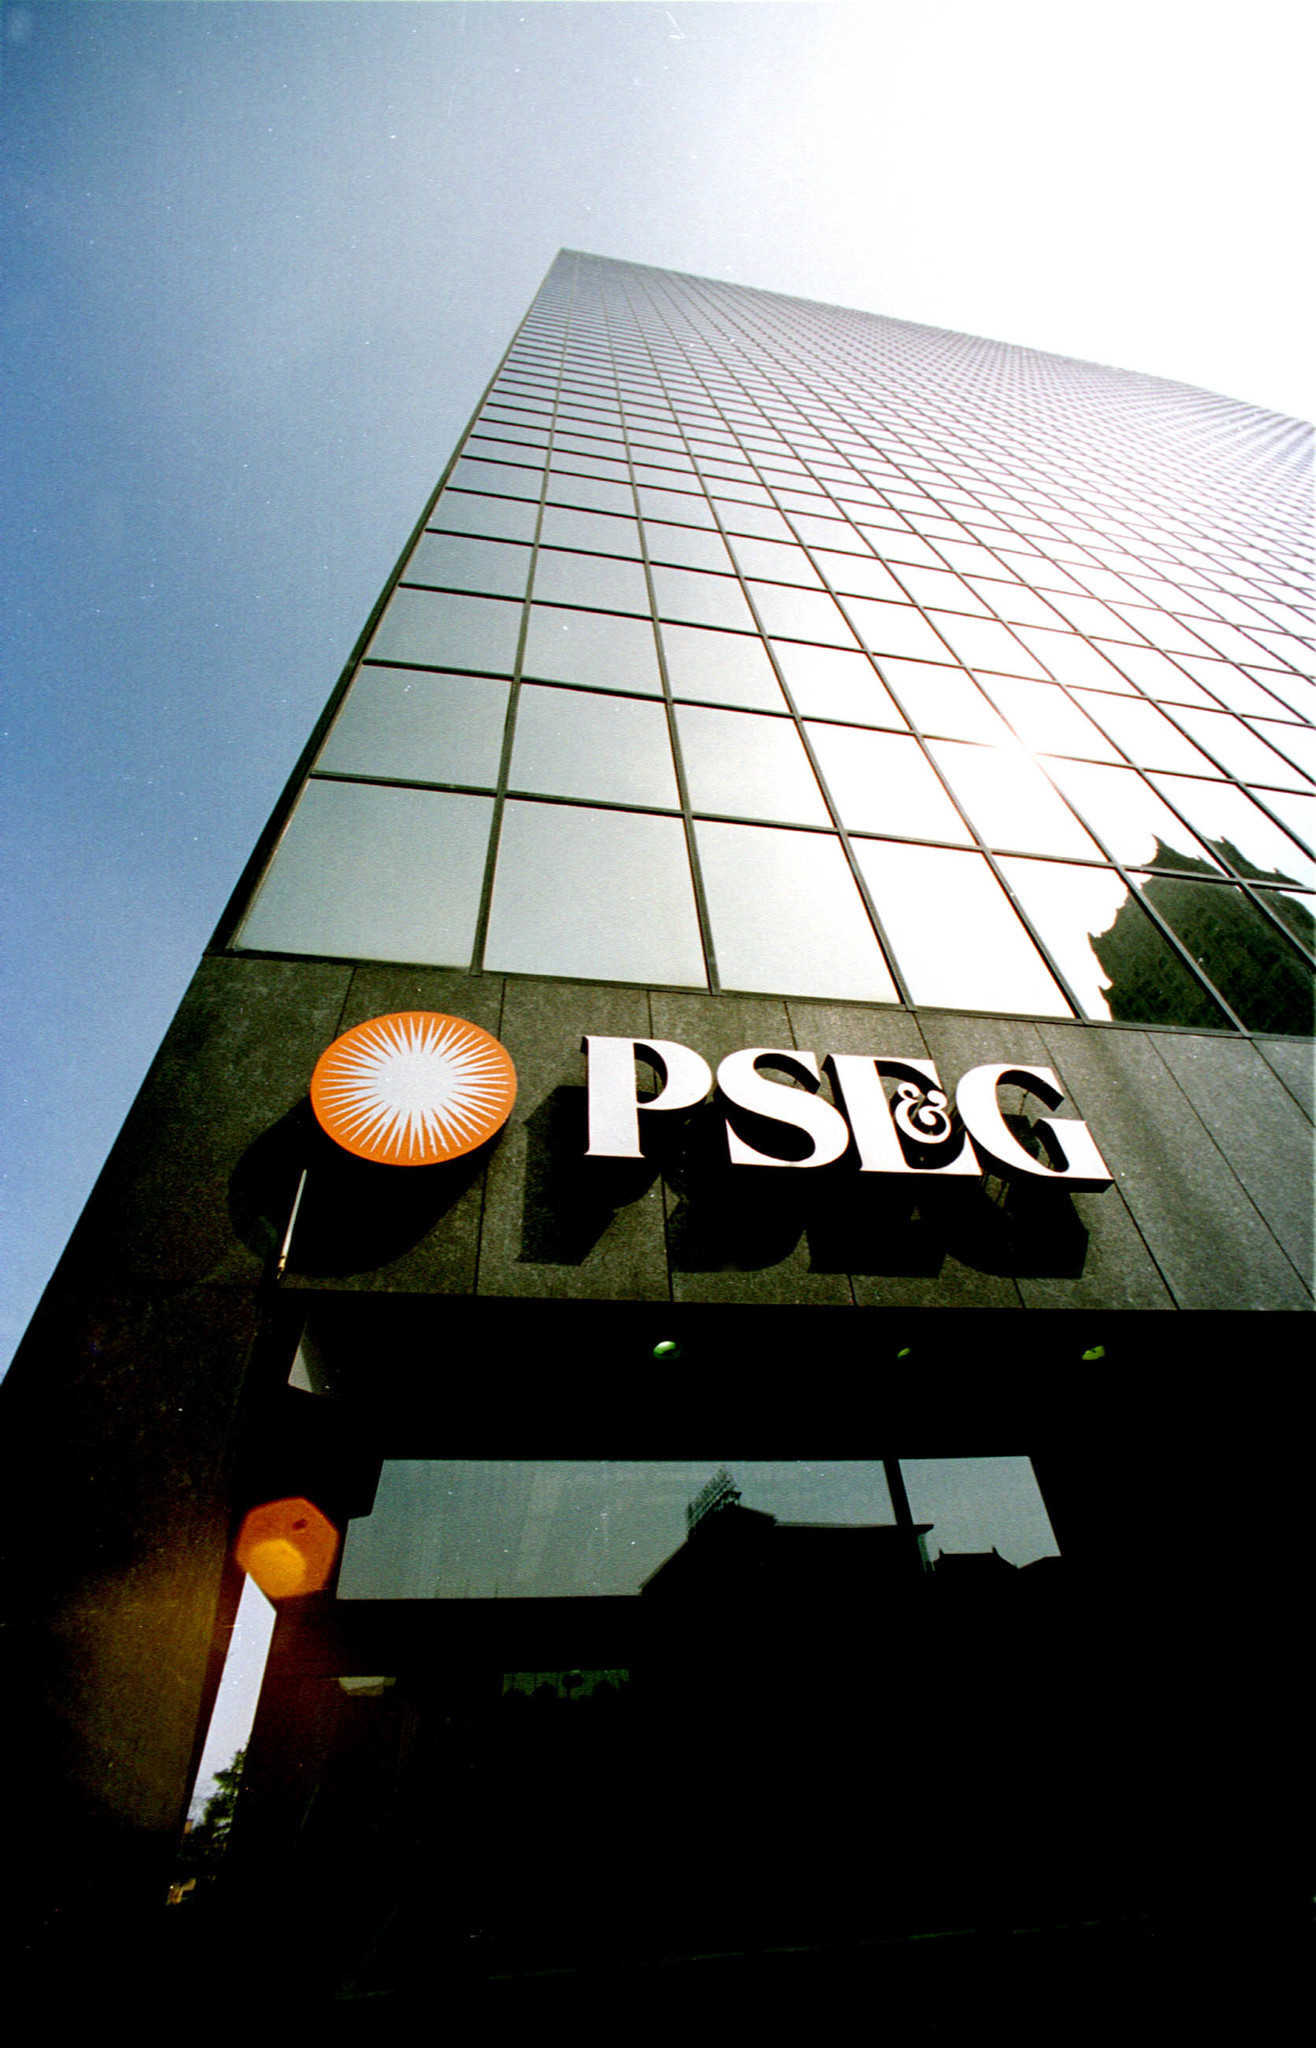 Contact Us - My Account - PSE&G